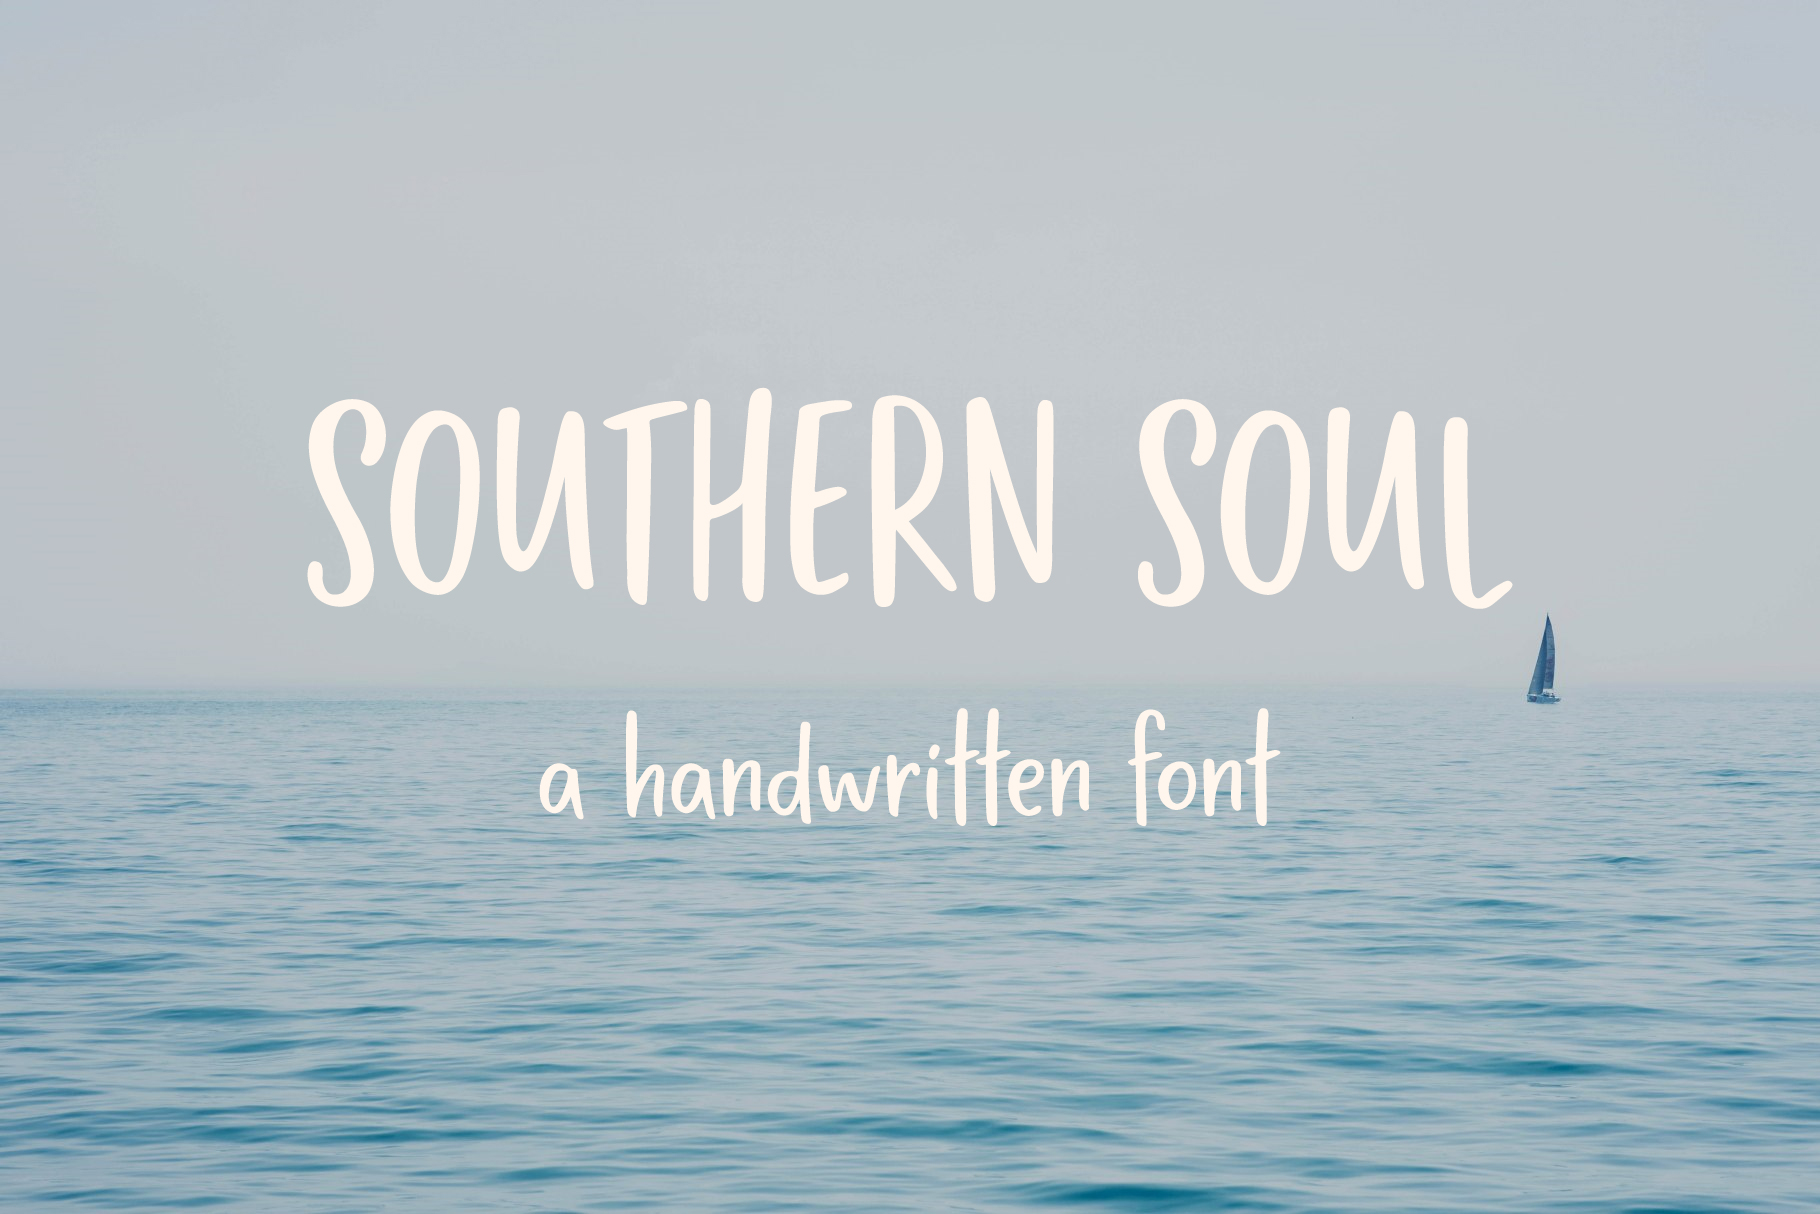 Southern Soul | Handwritten font example image 1